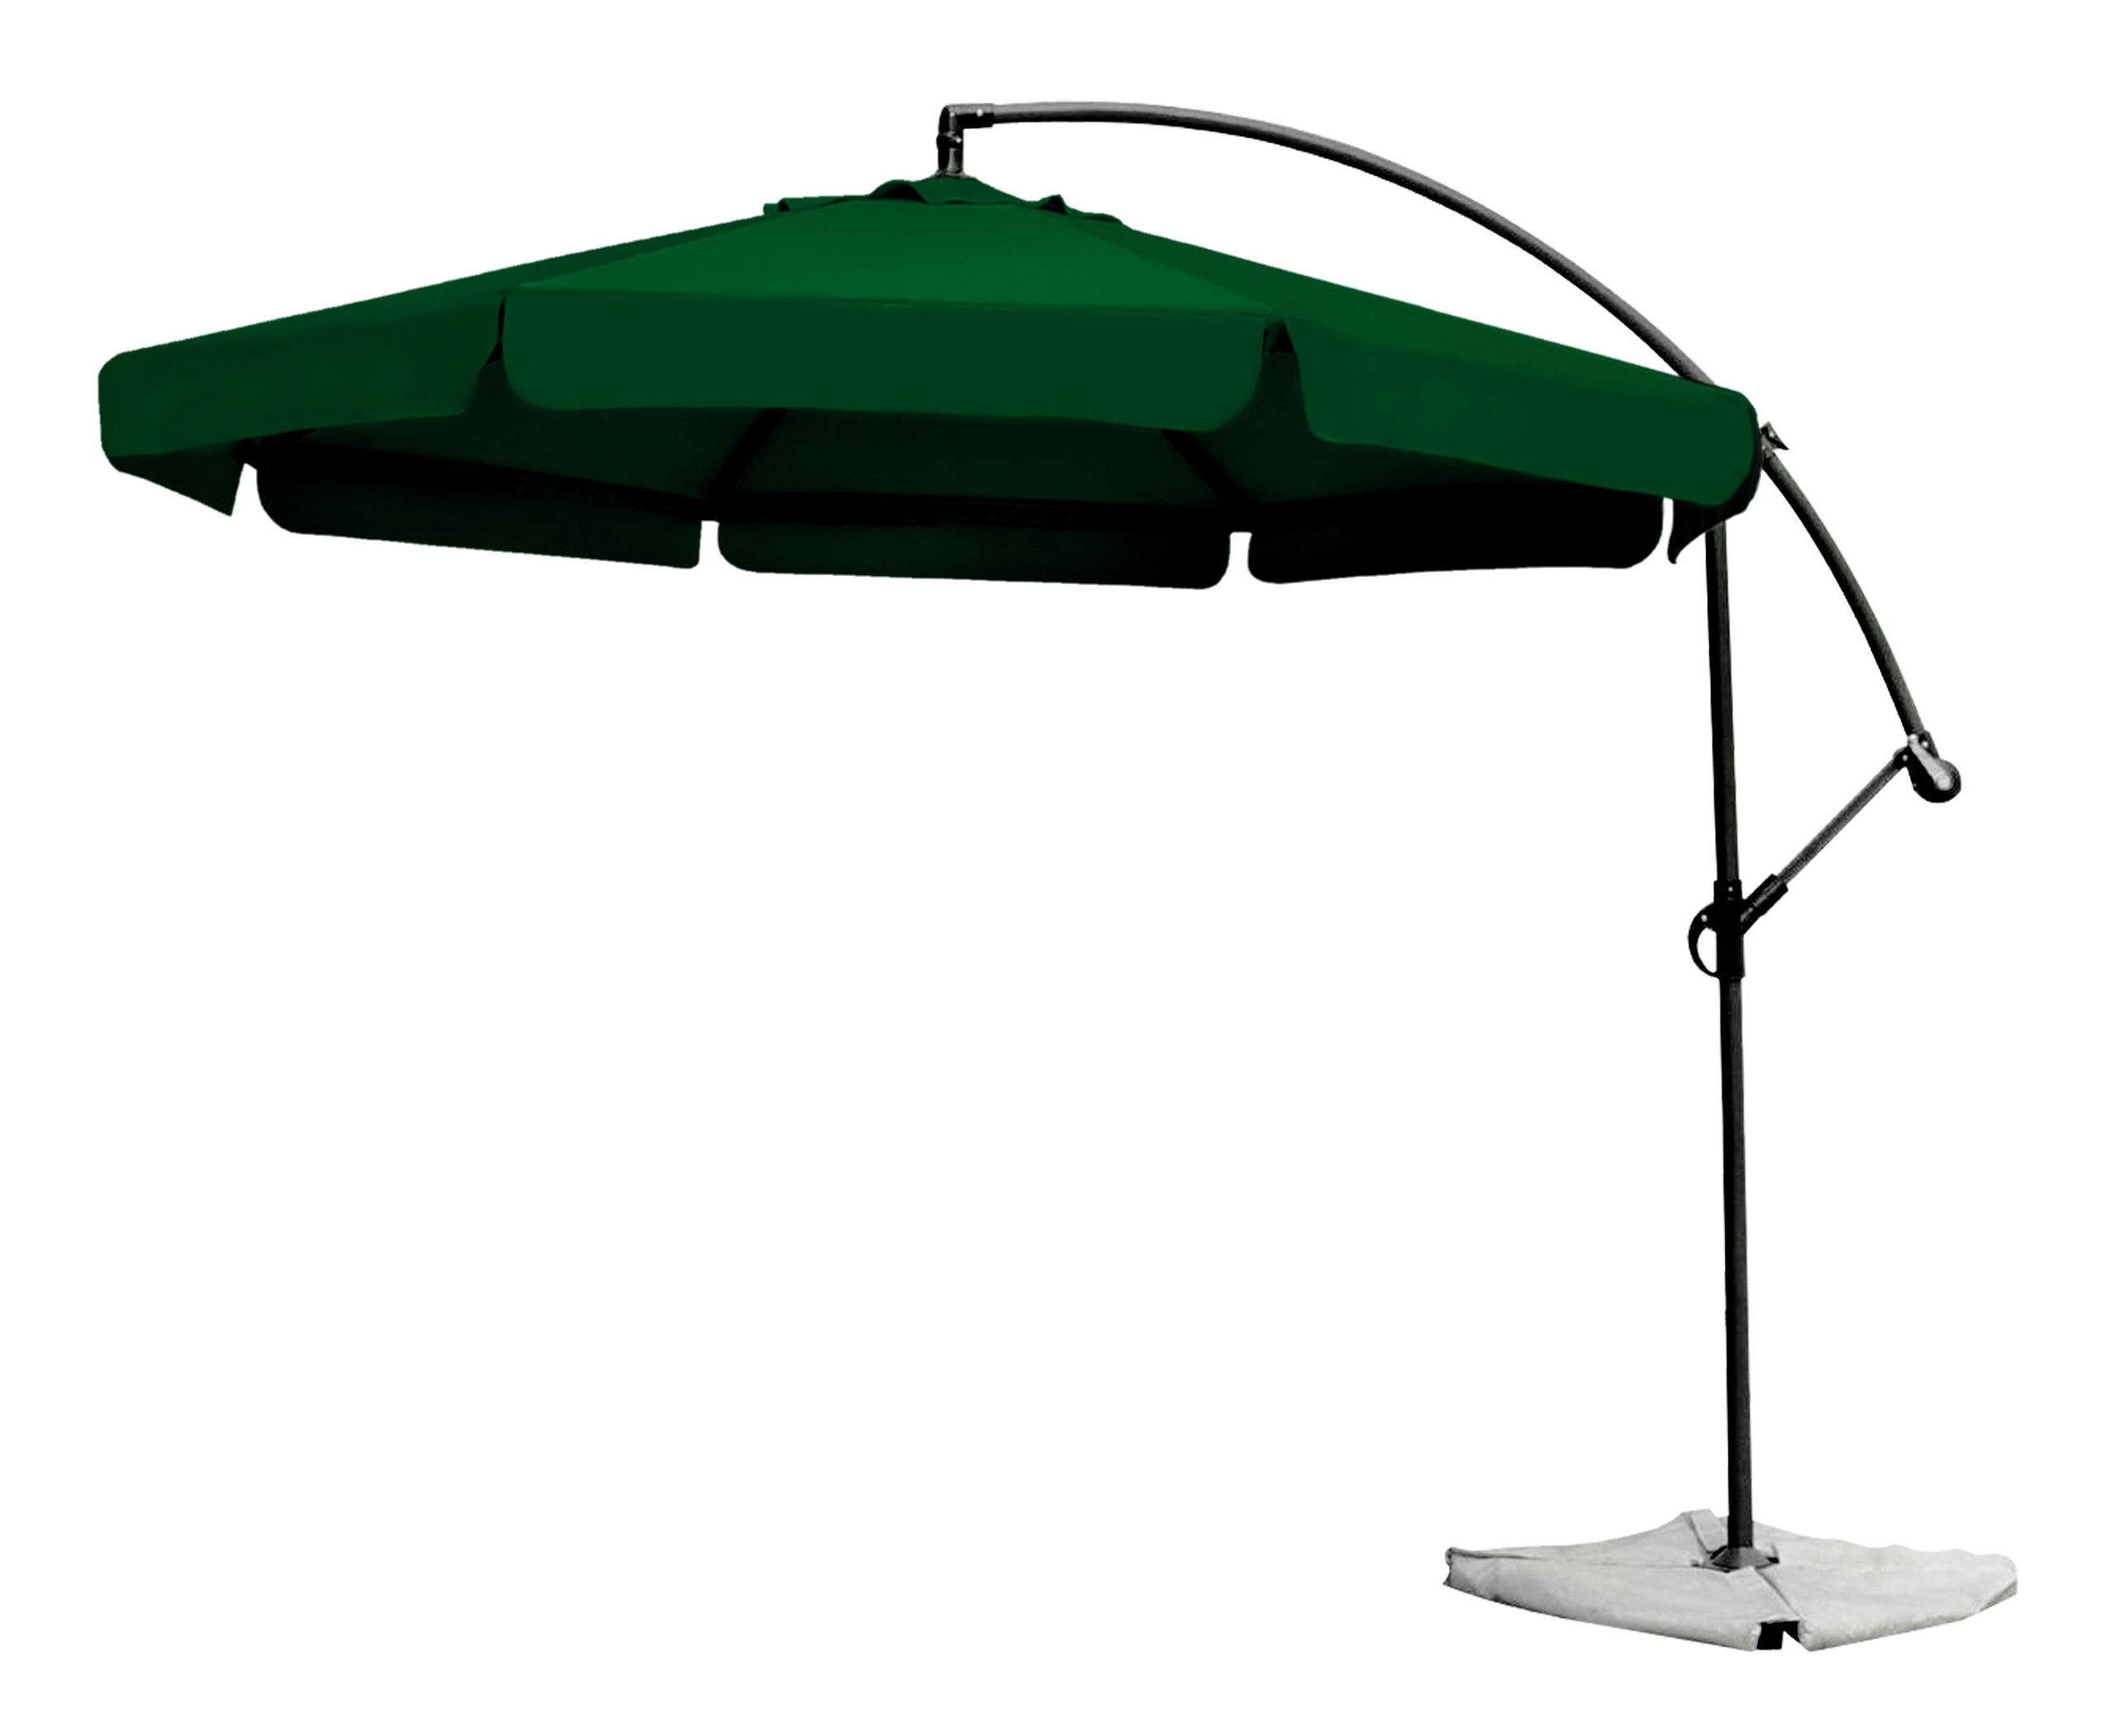 Walmart Patio Umbrellas Throughout Most Current Walmart Umbrellas Patio Elegant Furniture Walmart Patio Umbrella (View 17 of 20)